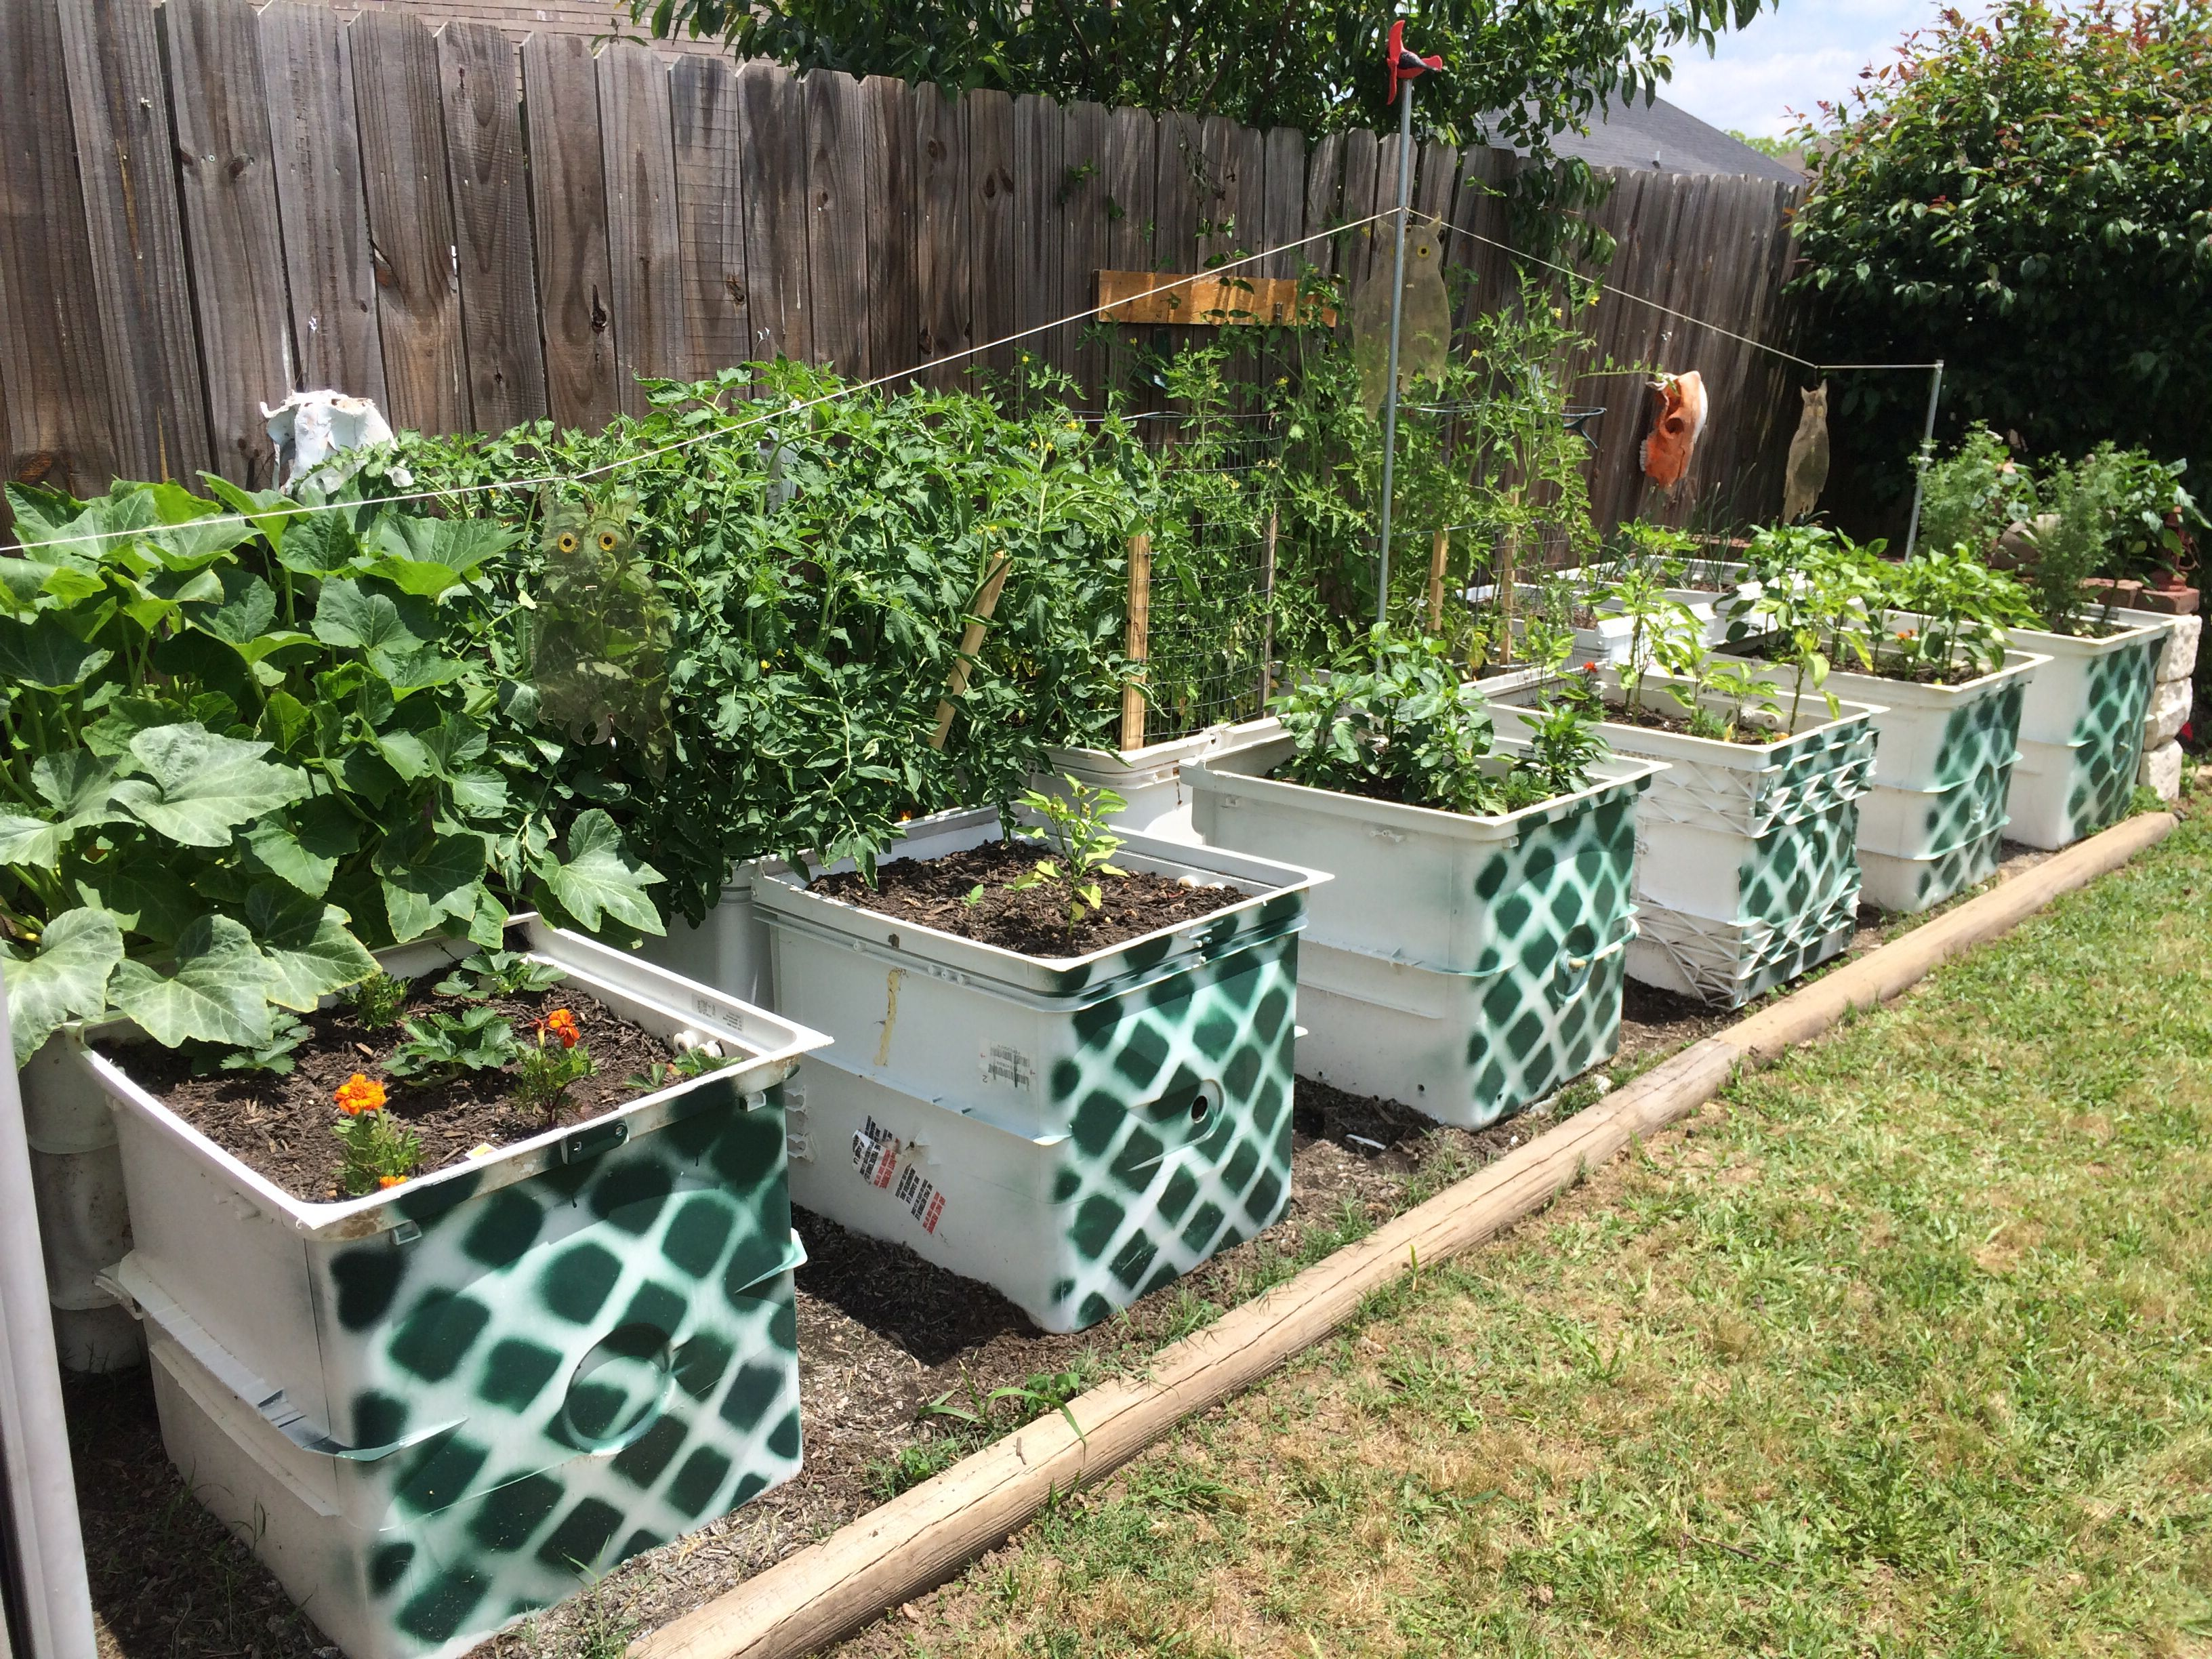 Doug S Dishwasher Garden Raised Beds Made From Discarded